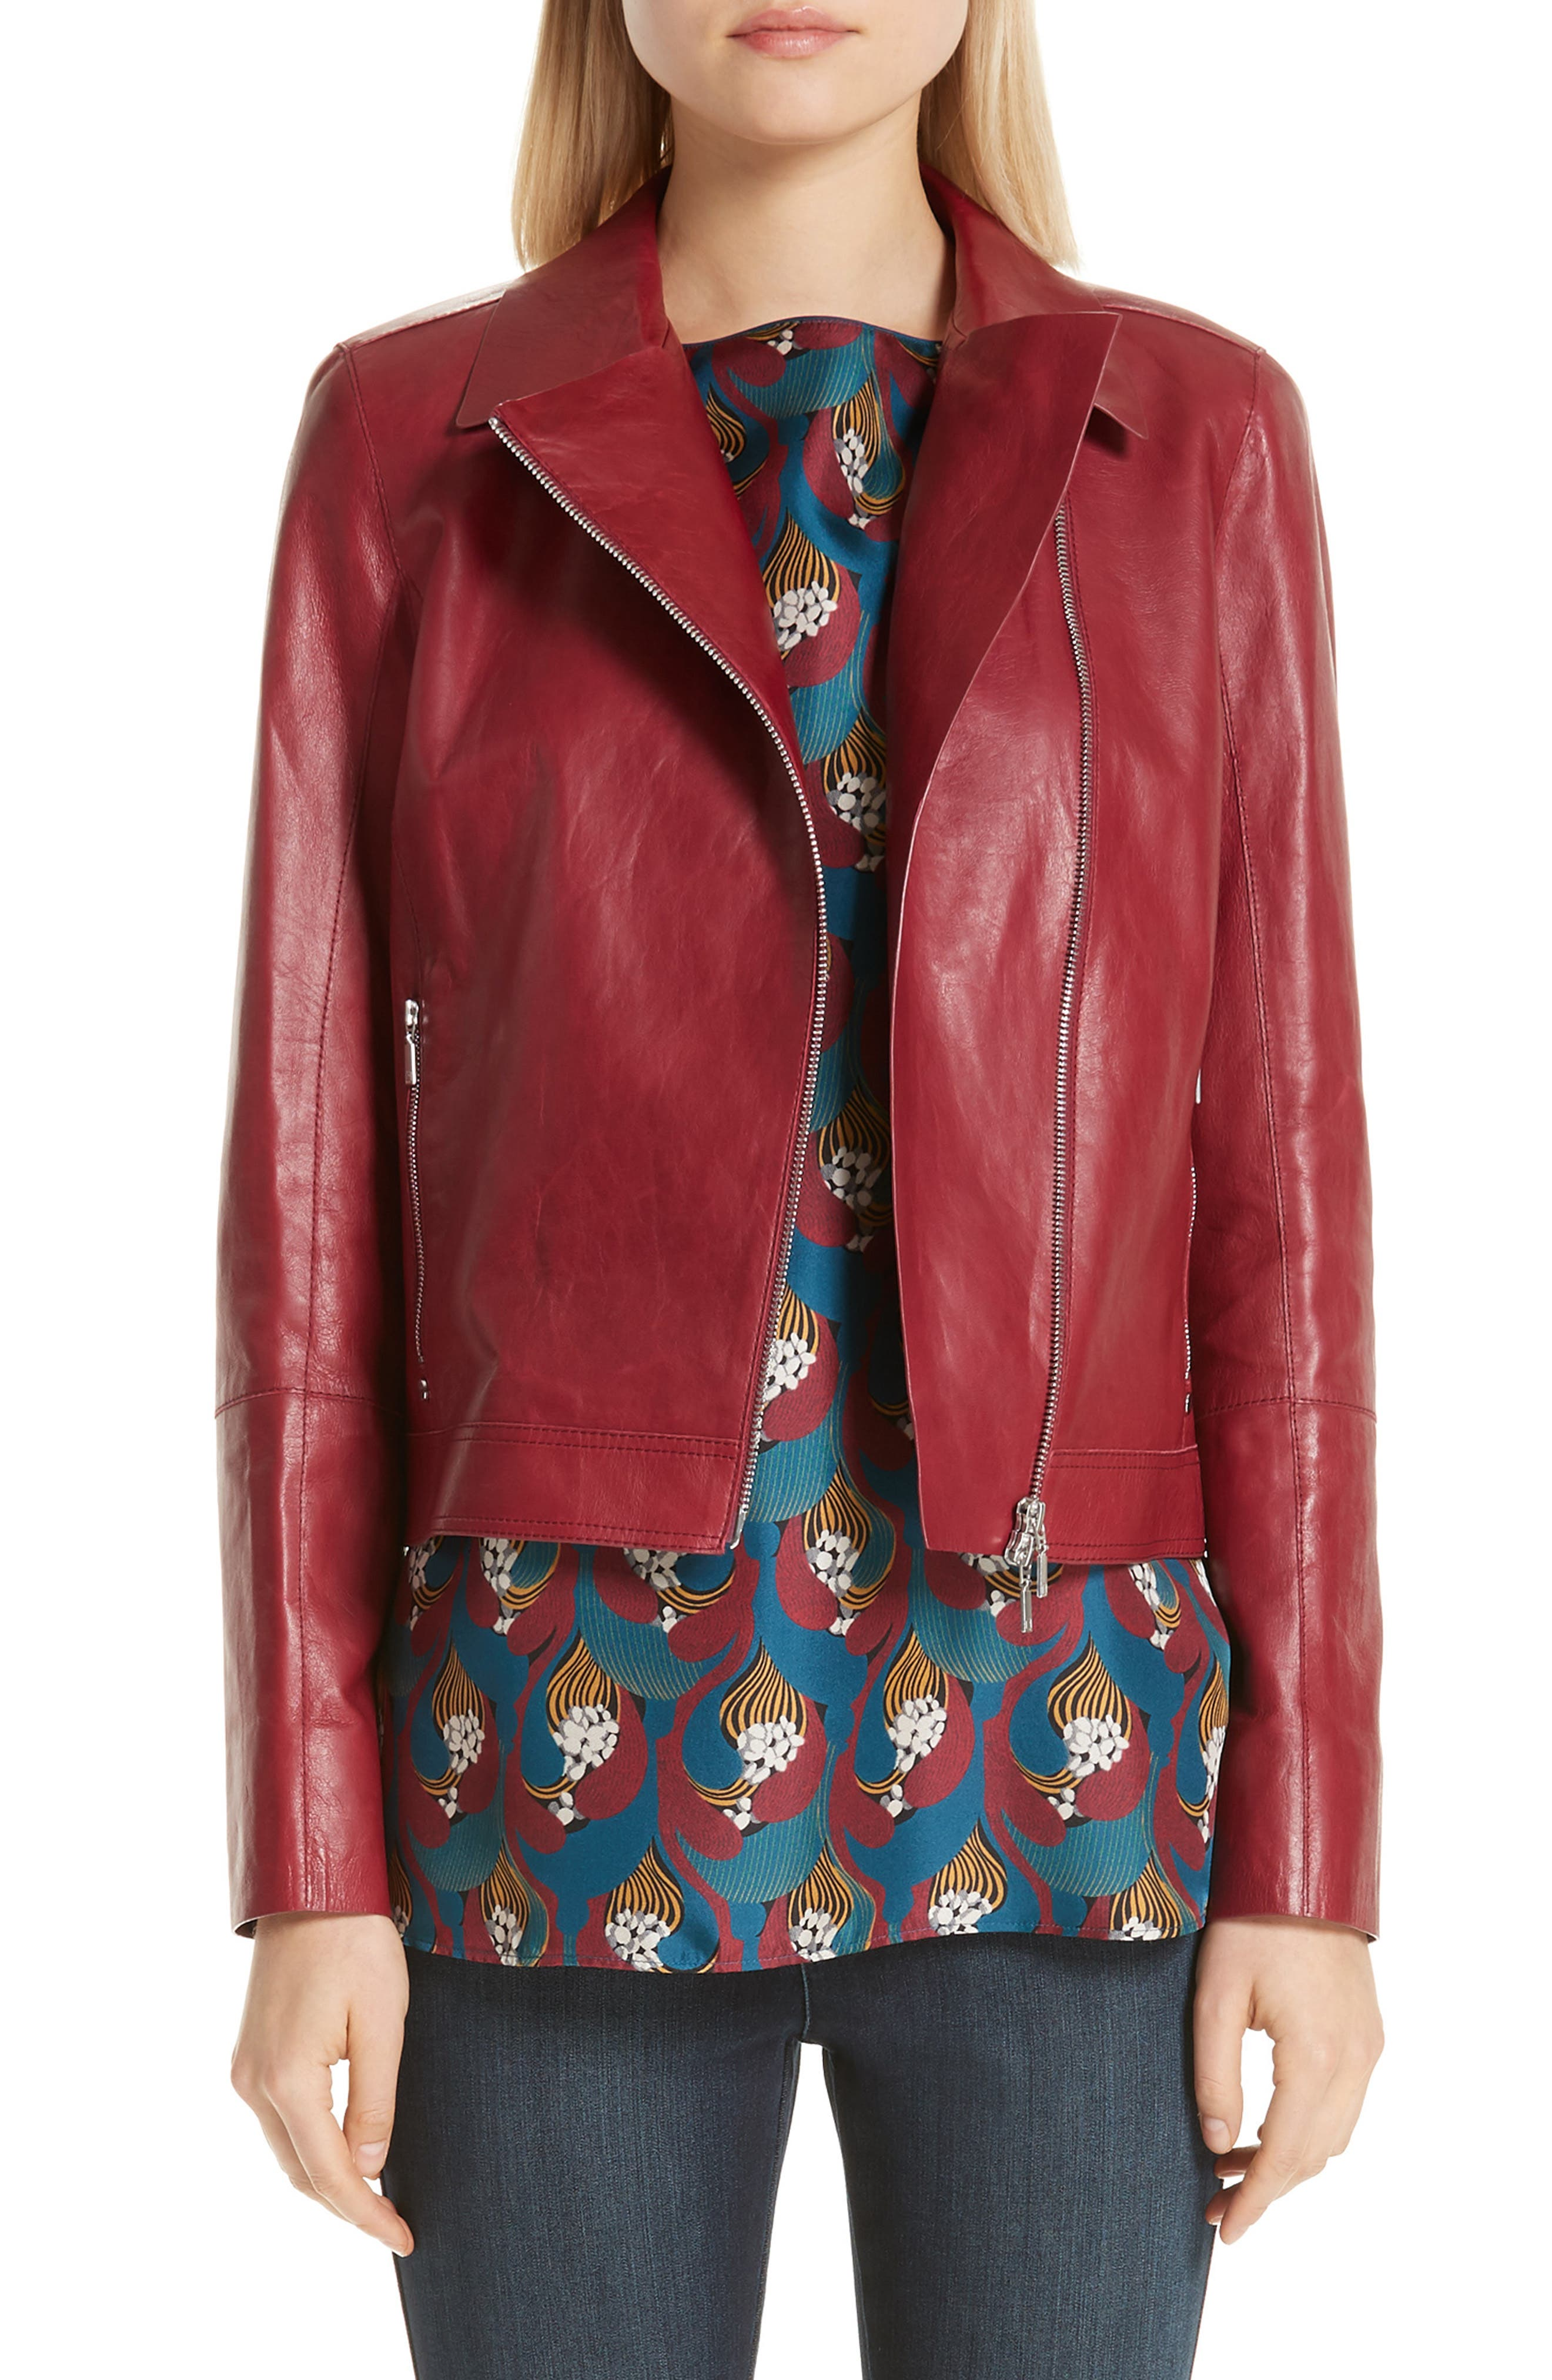 LAFAYETTE 148 NEW YORK, Marykate Leather Moto Jacket, Main thumbnail 1, color, 600